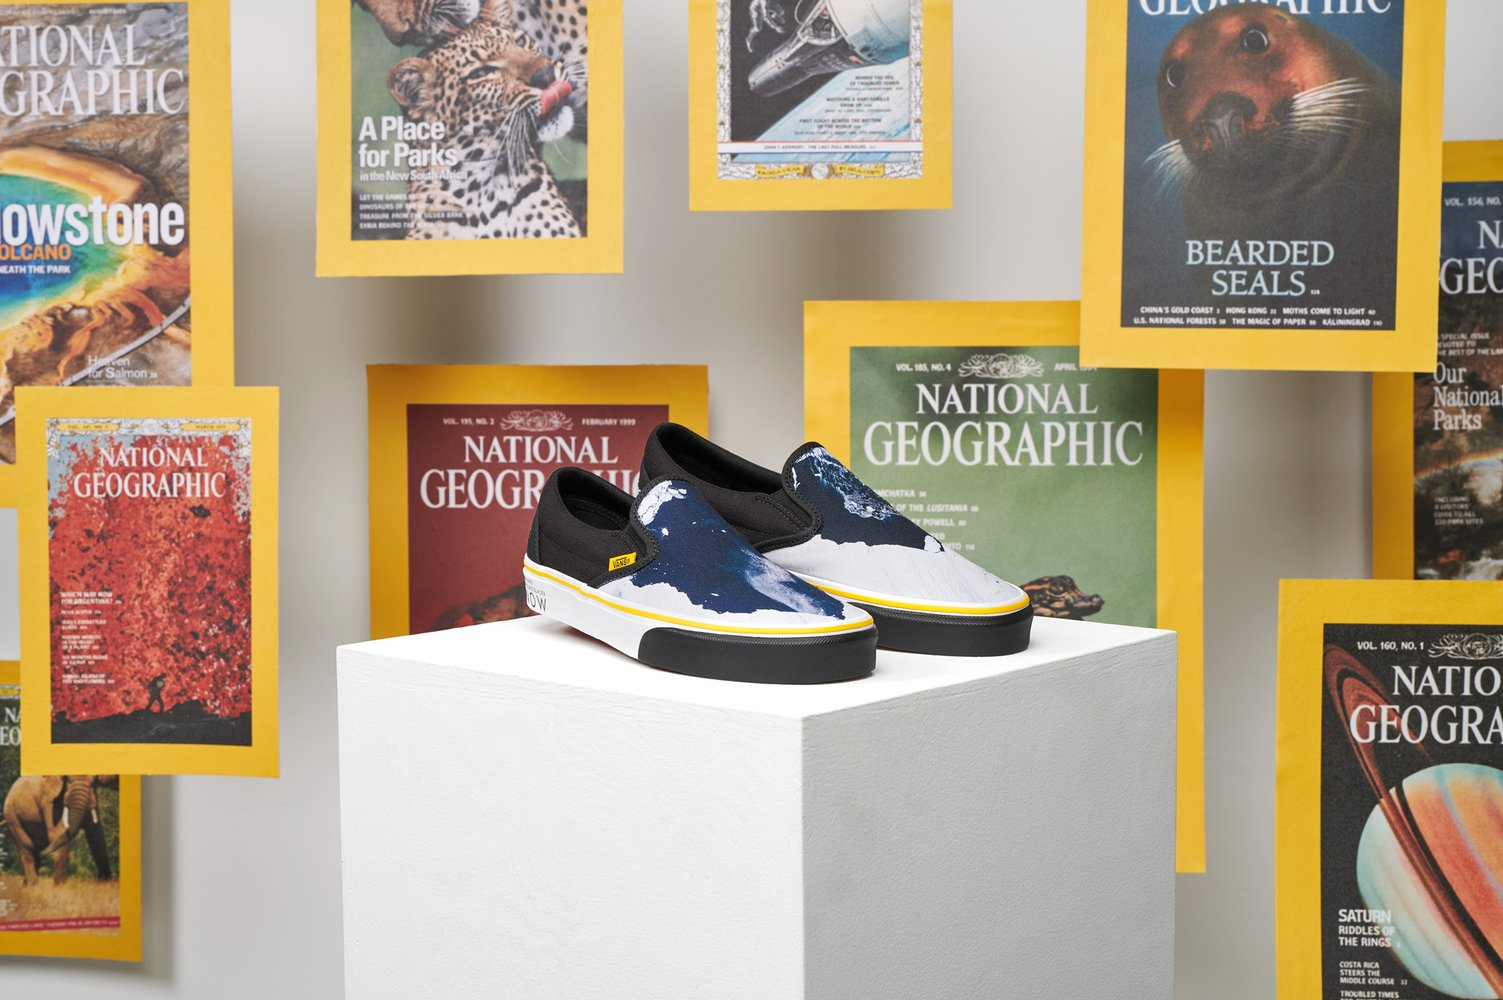 SP20_VN0A4U38WT3_ClassicSlip-On_NatGeo_Then-NowGlacier_Elevated.jpg